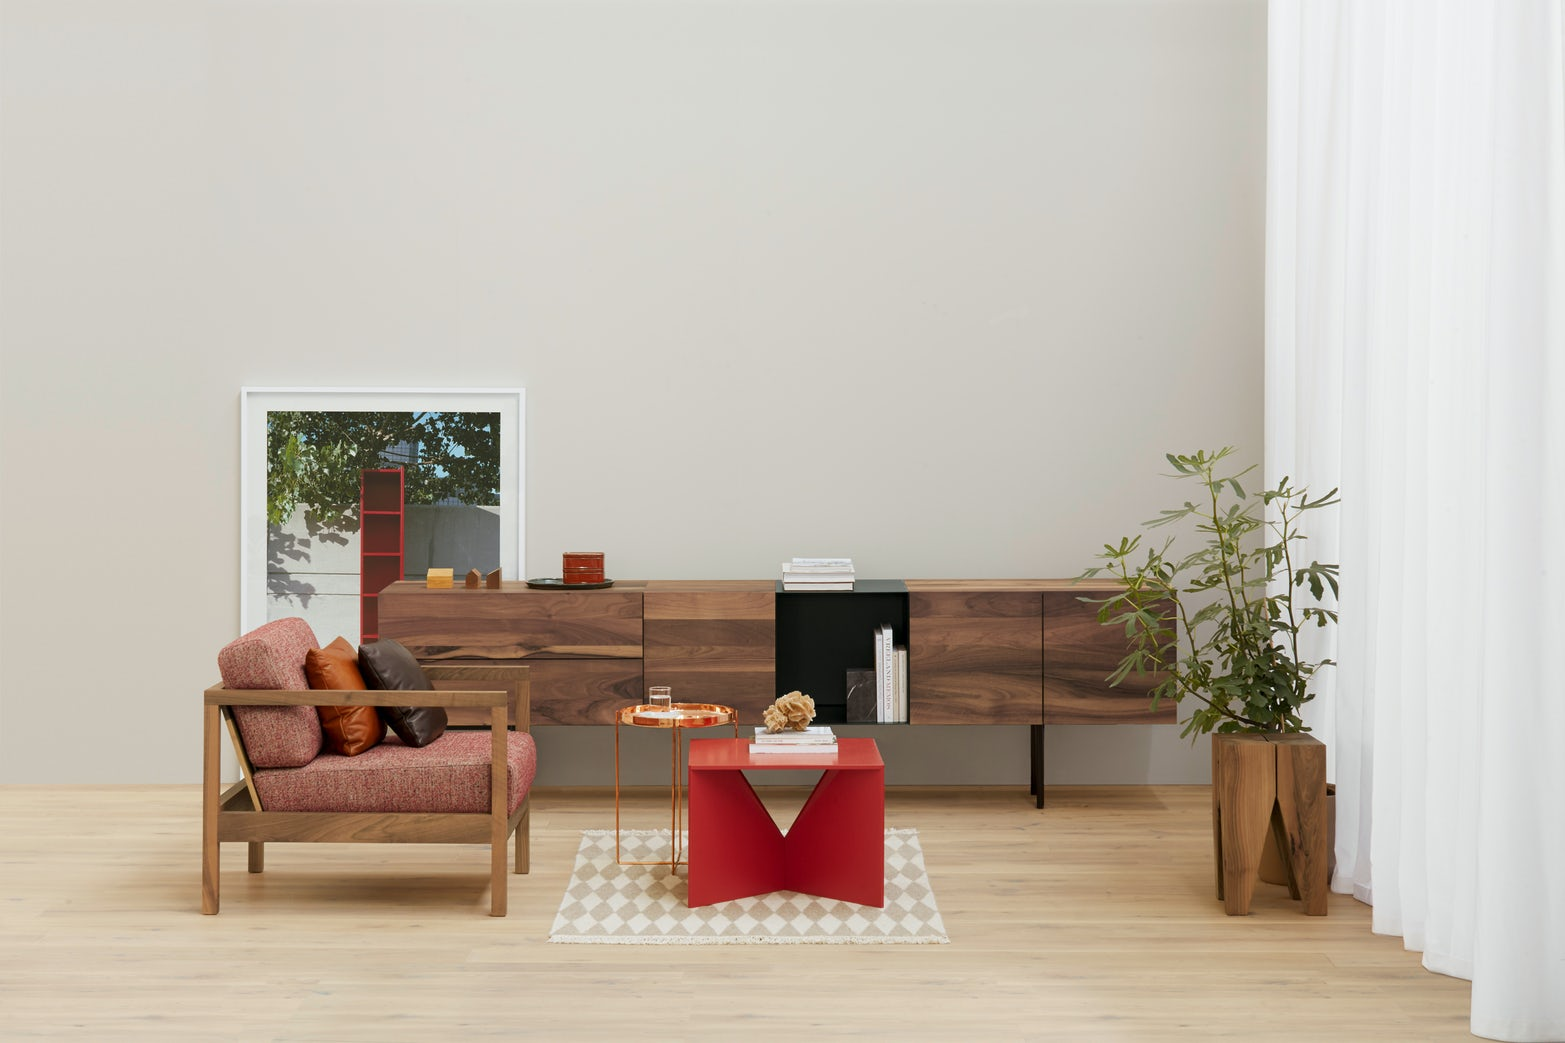 calvert coffee table by e15 in living room